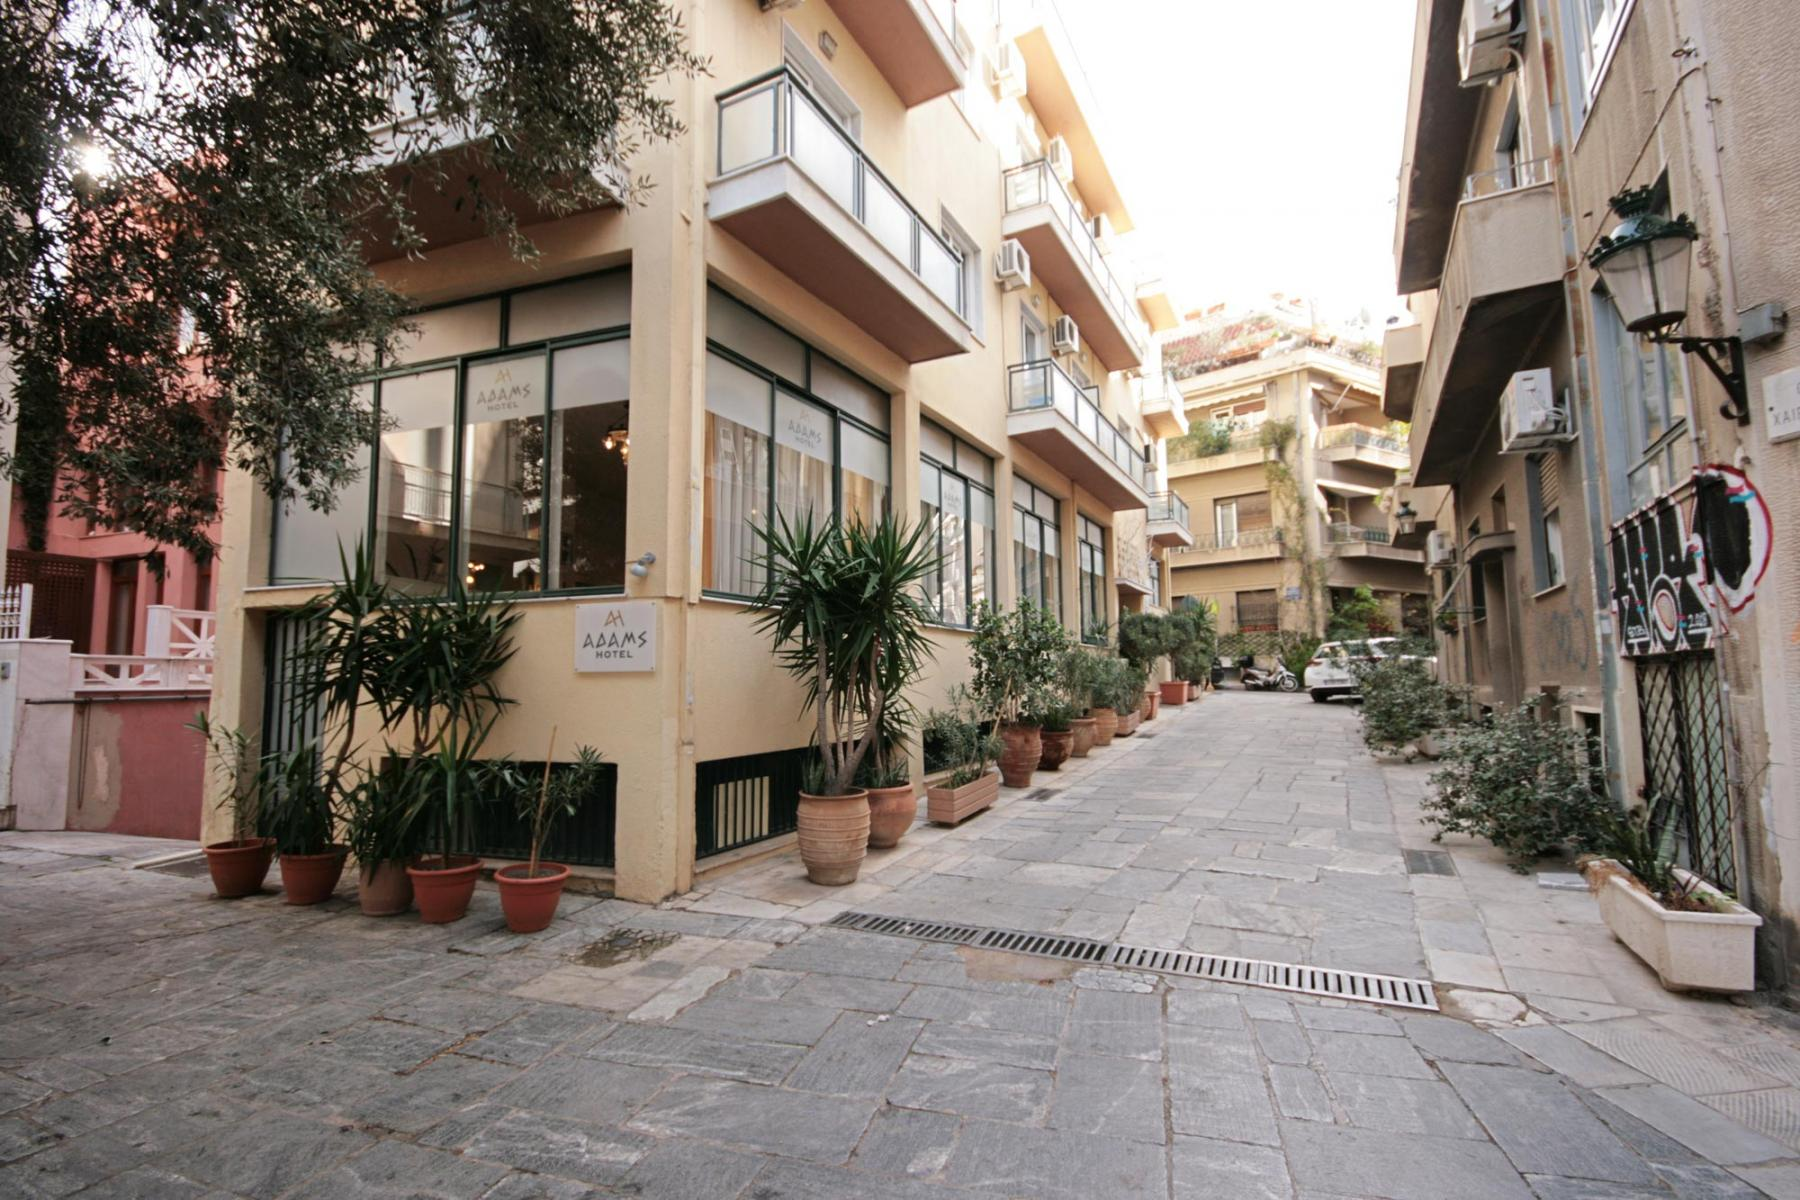 location athens center rh adamshotel gr